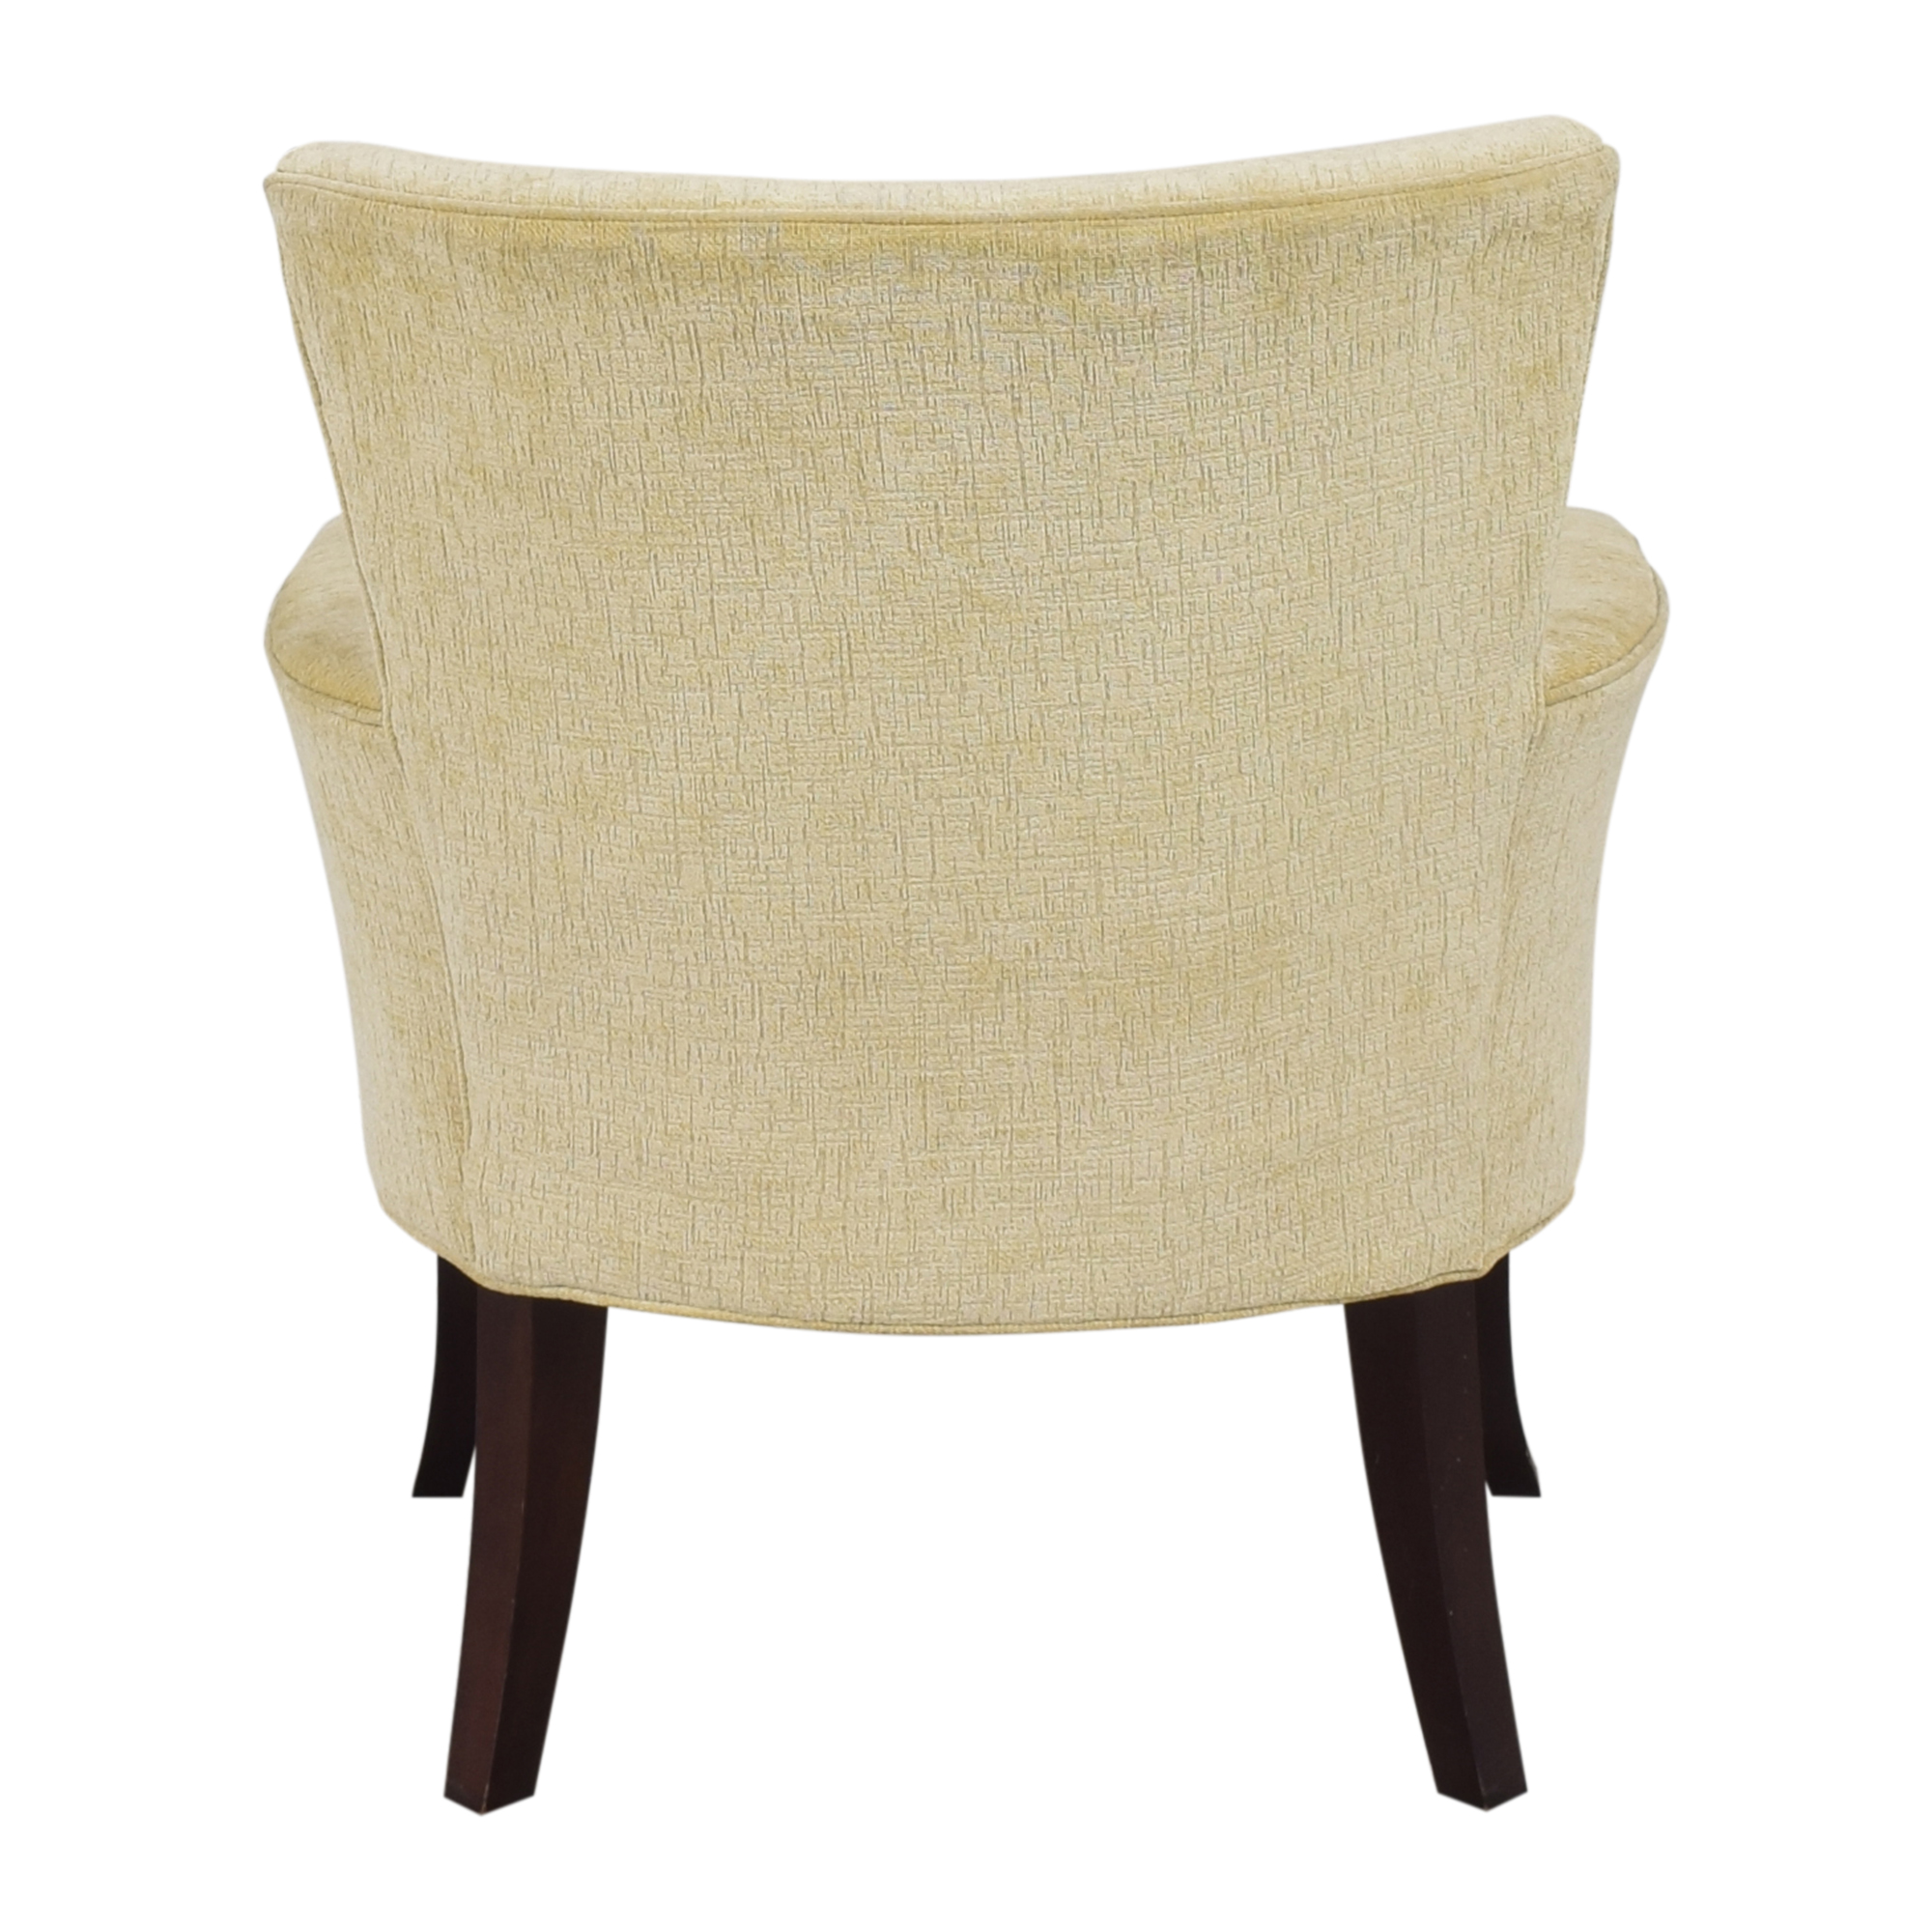 Crate & Barrel Crate & Barrel Accent Arm Chair used